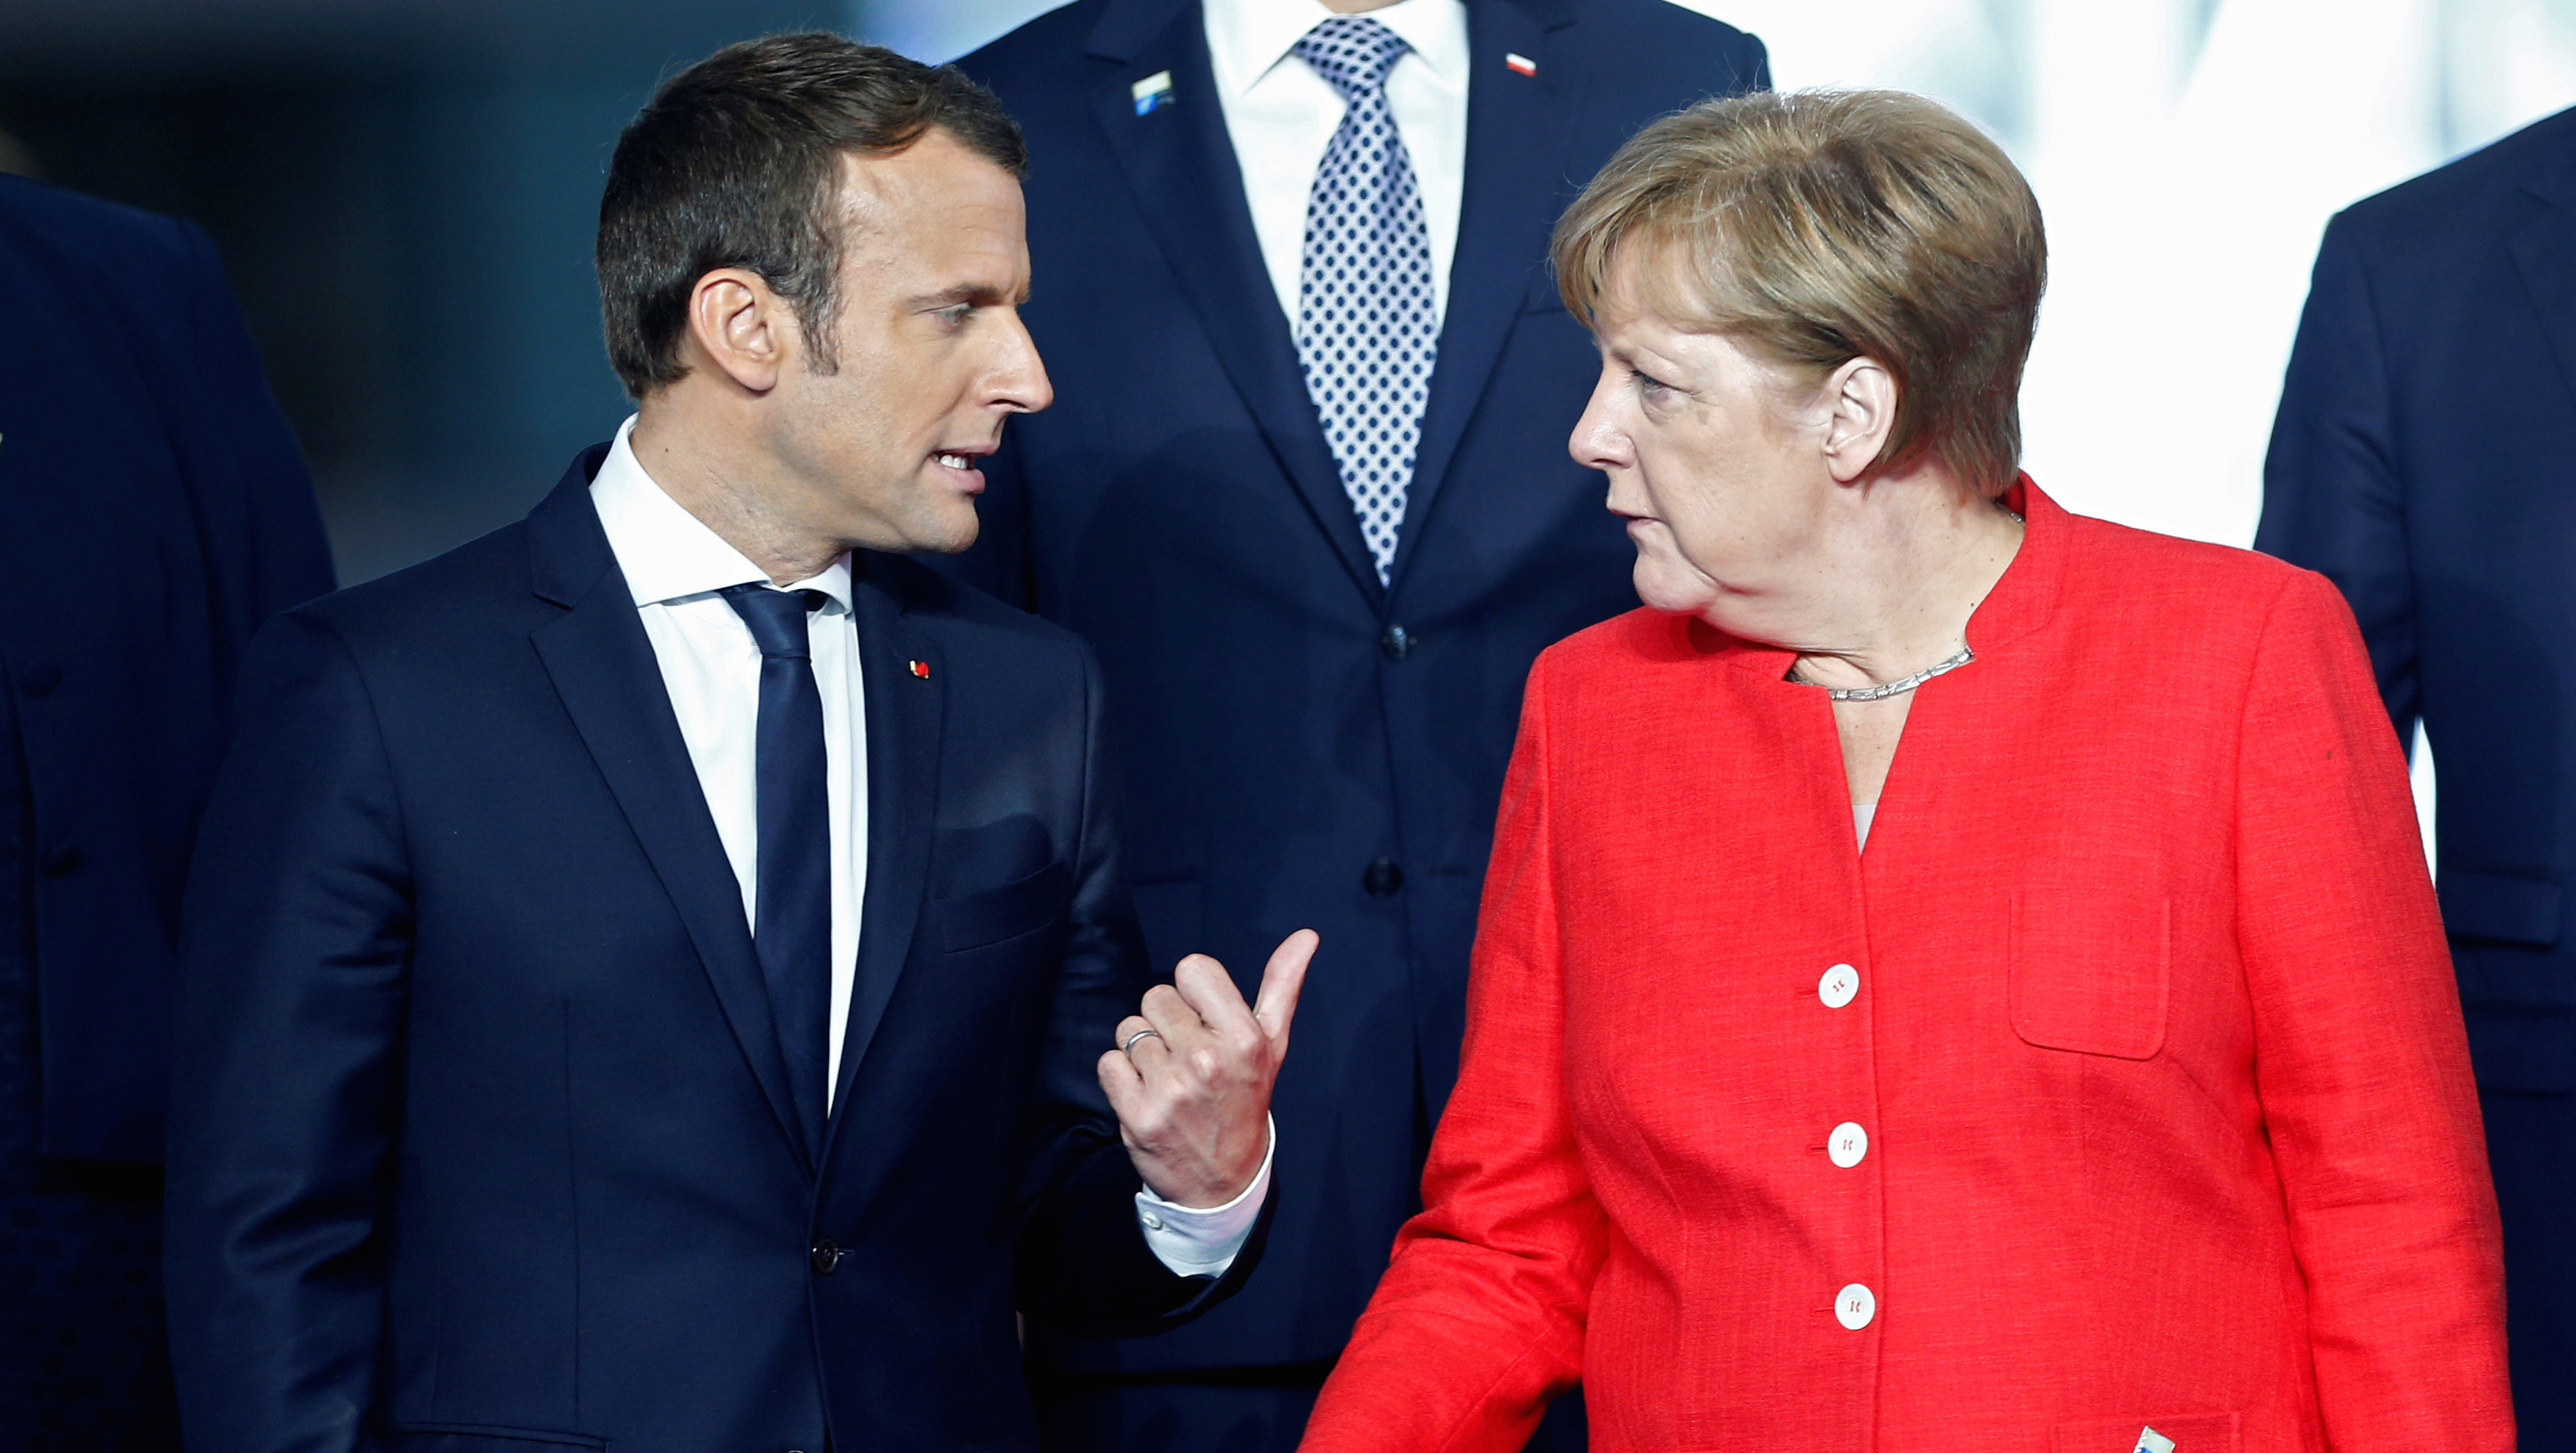 French President Emmanuel Macron (L) and  German Chancellor Angela Merkel (R) speak as they gather with NATO member leaders before the start of their summit in Brussels, Belgium, May 25, 2017.